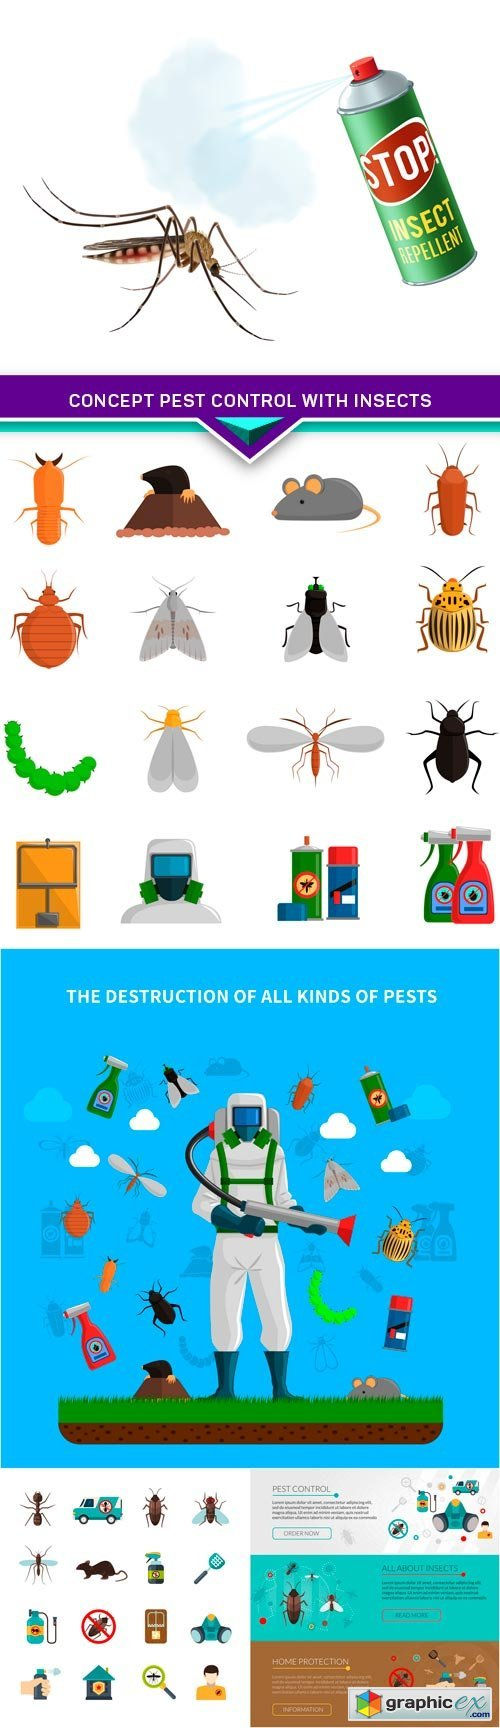 Concept pest control with insects 5X EPS